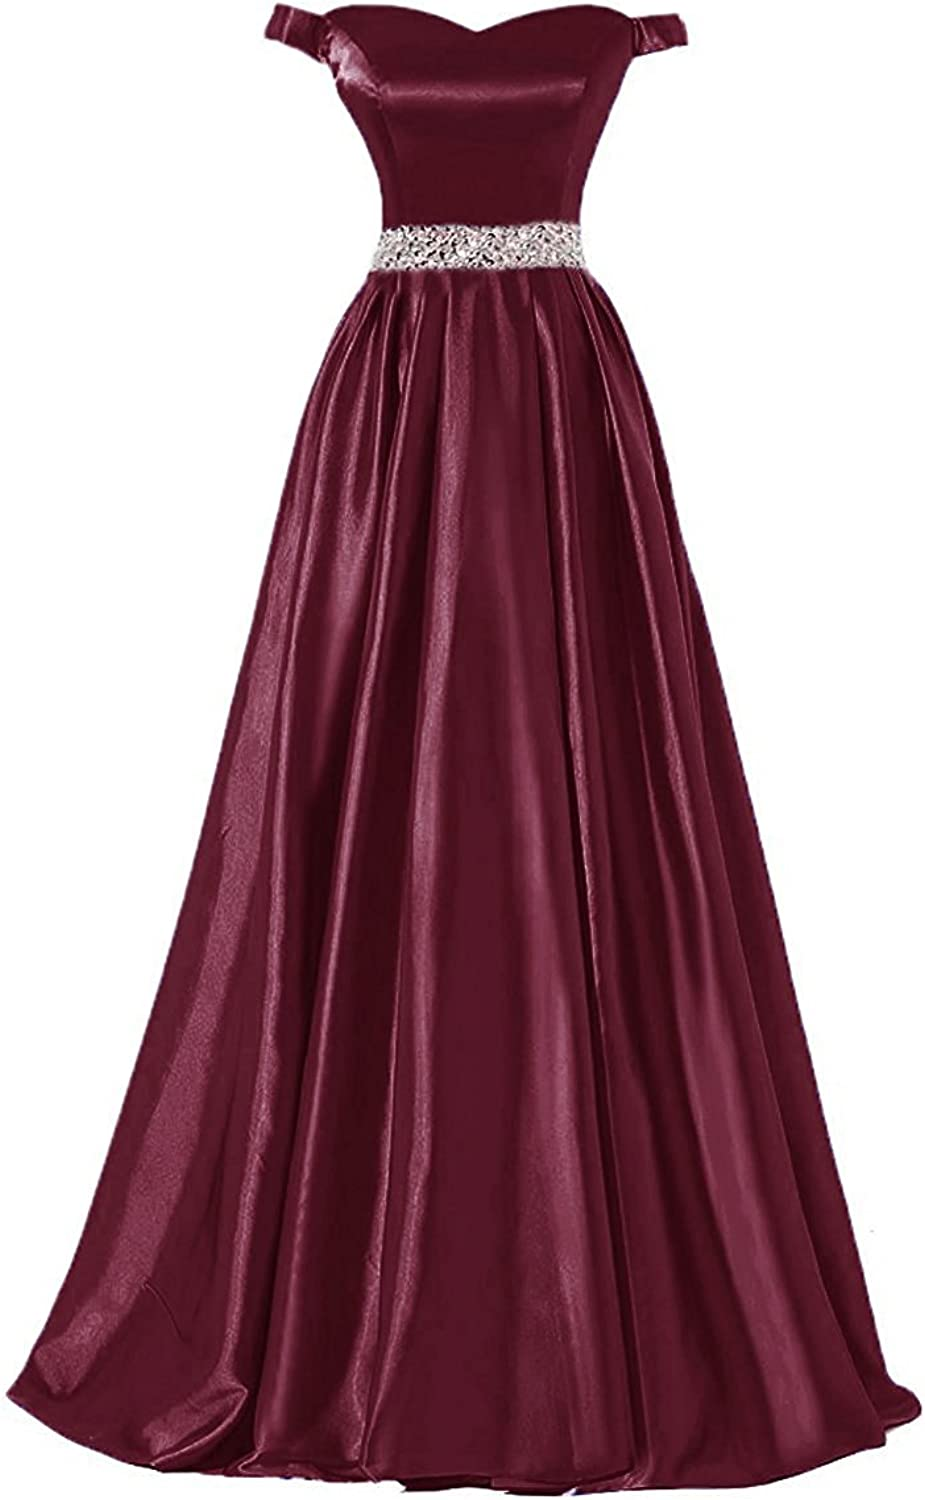 Awishwill Women's Off Shoulder Cap Sleeve Sequines Long Satin Prom Evening Dress Sweetheart Formal Party Gown